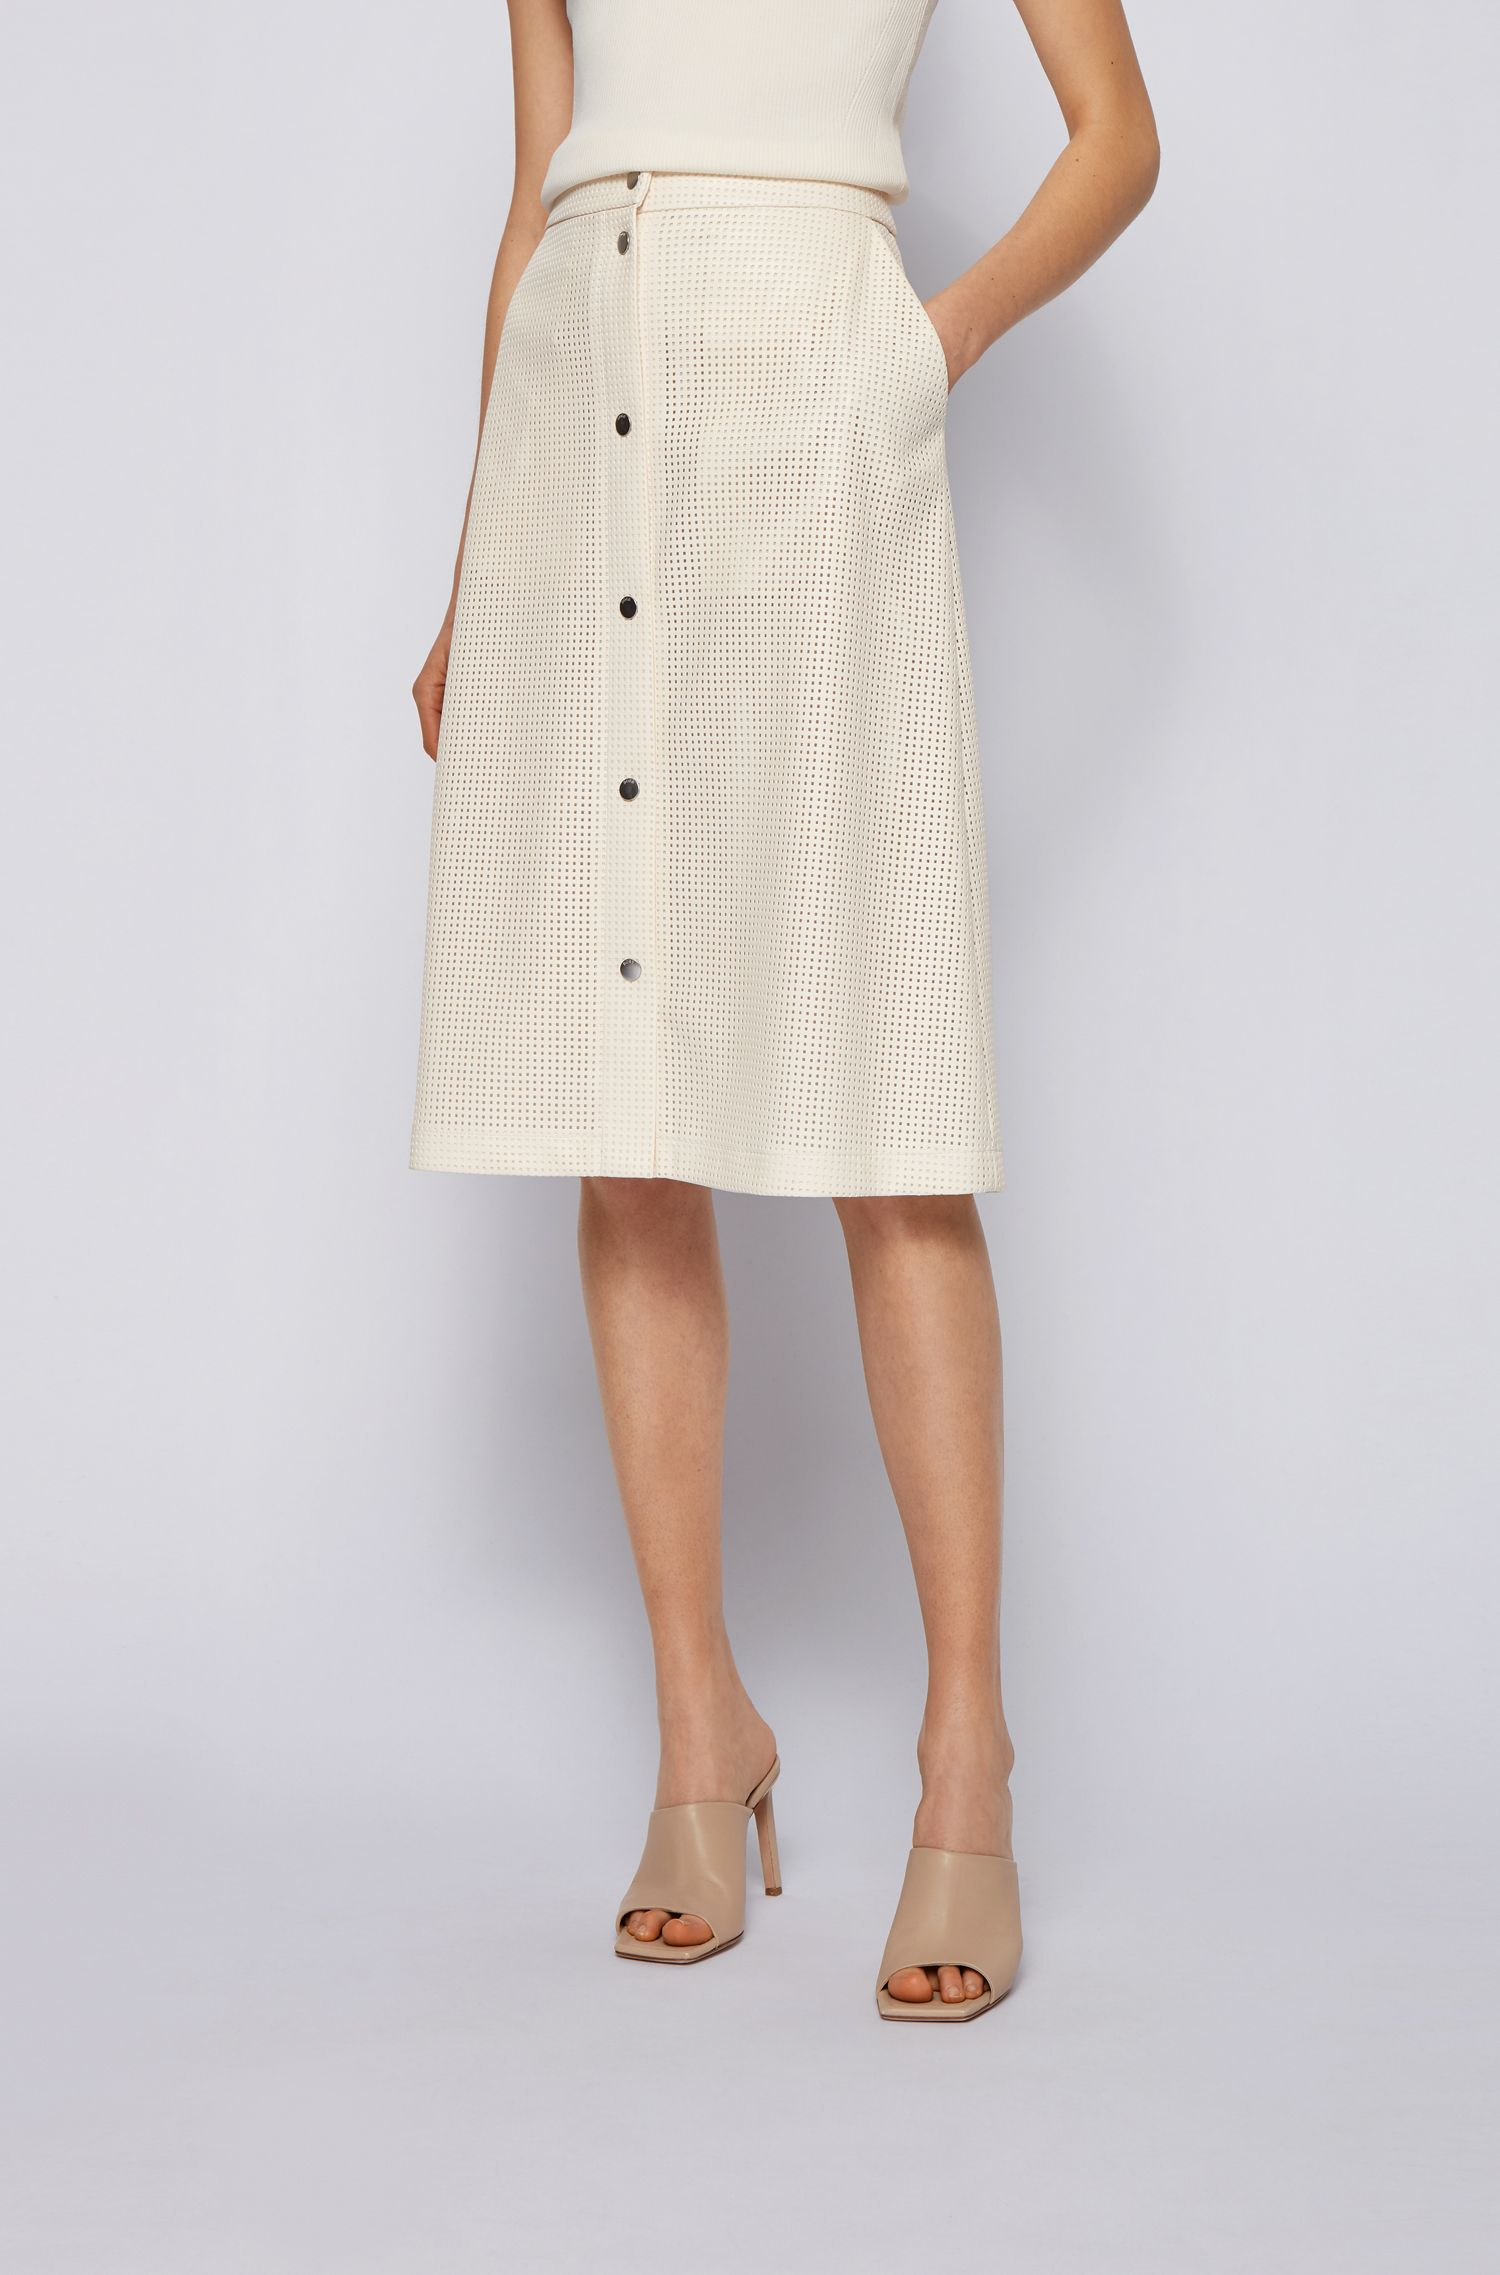 A-line skirt in perforated faux leather with buttons along the length BOSS | Skirts | 50450606118